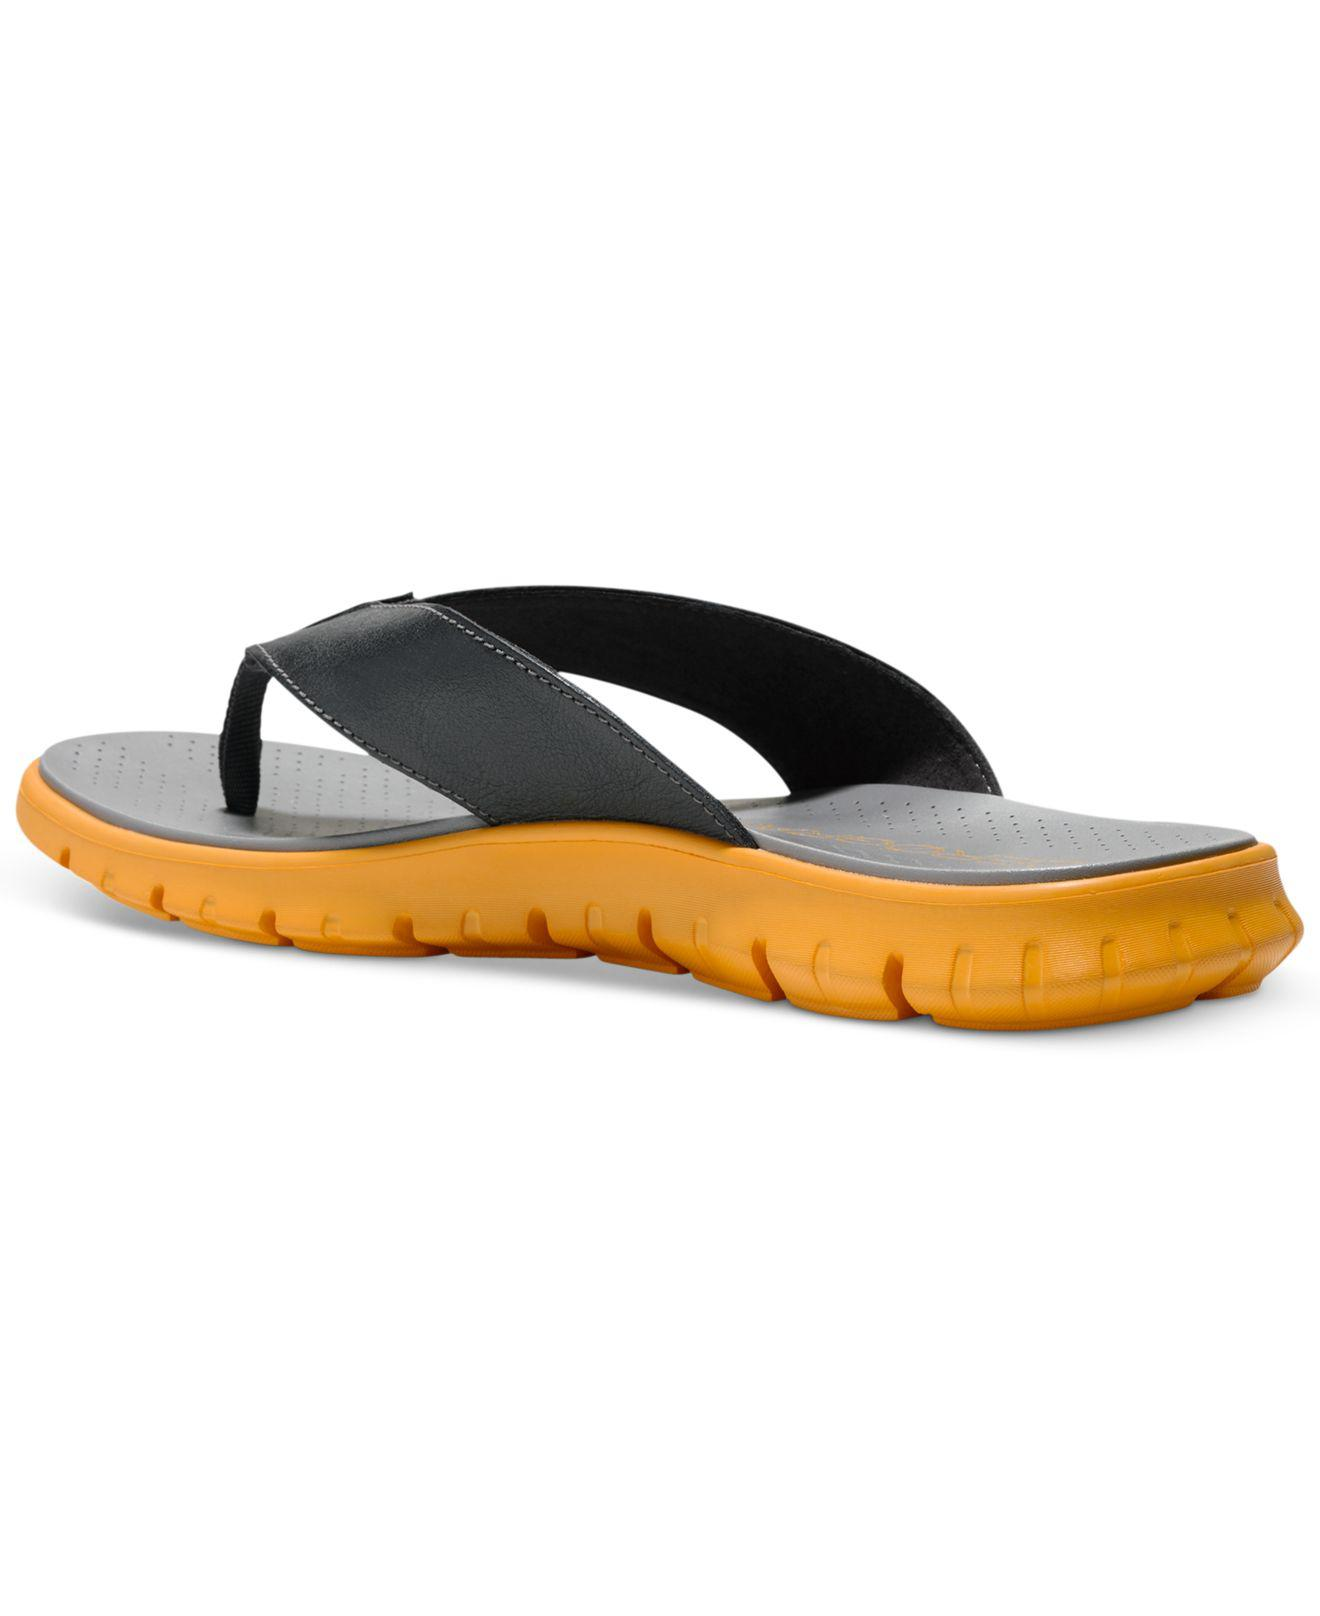 3119aa332e84 Lyst - Cole Haan Zerogrand Thong Sandal in Gray for Men